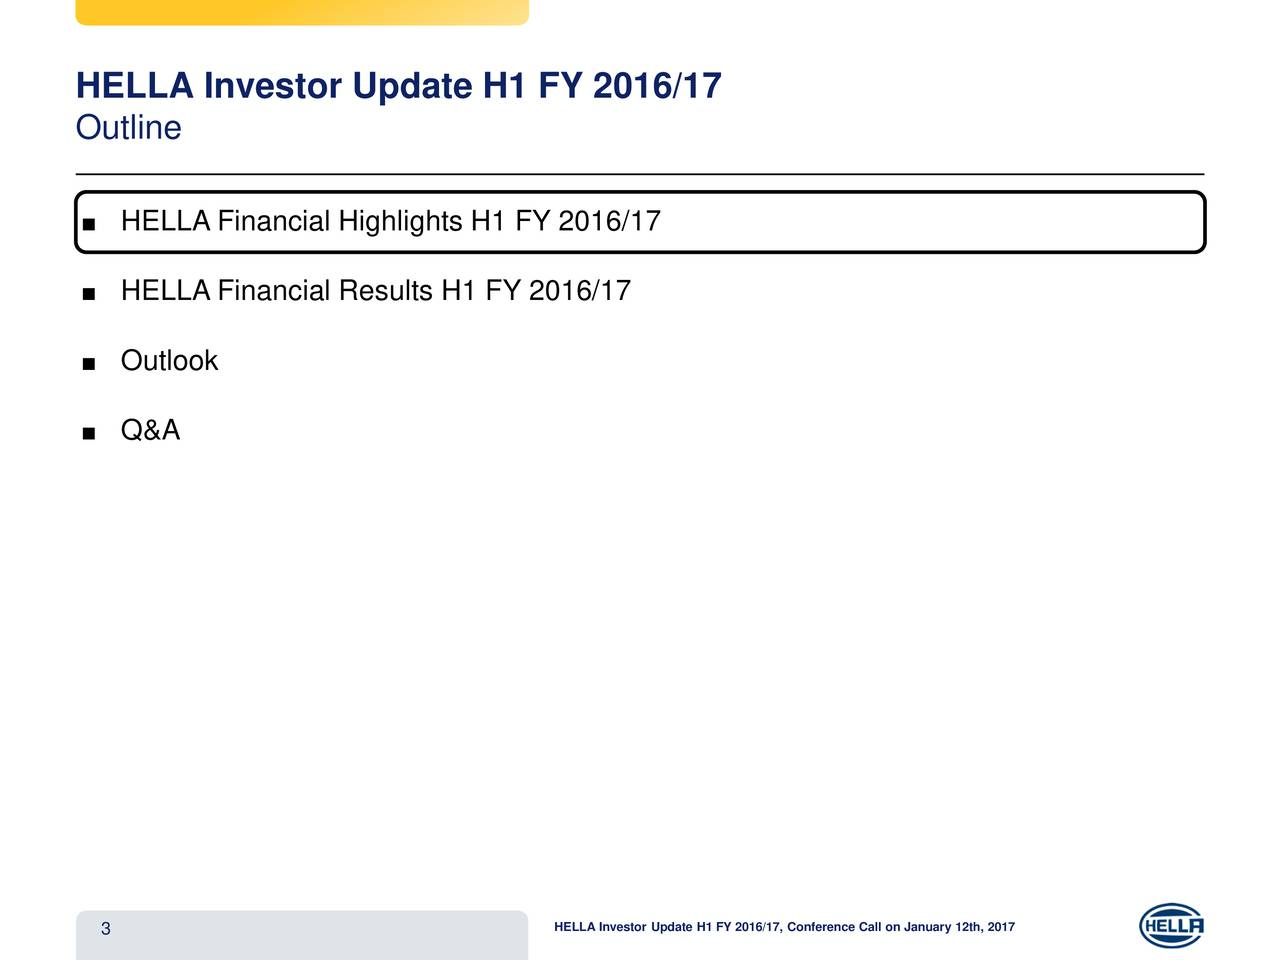 Outline HELLA Financial Highlights H1 FY 2016/17 HELLA Financial Results H1 FY 2016/17 Outlook Q&A 3 HELLA Investor Update H1 FY 2016/17, Conference Call on January 12th, 2017